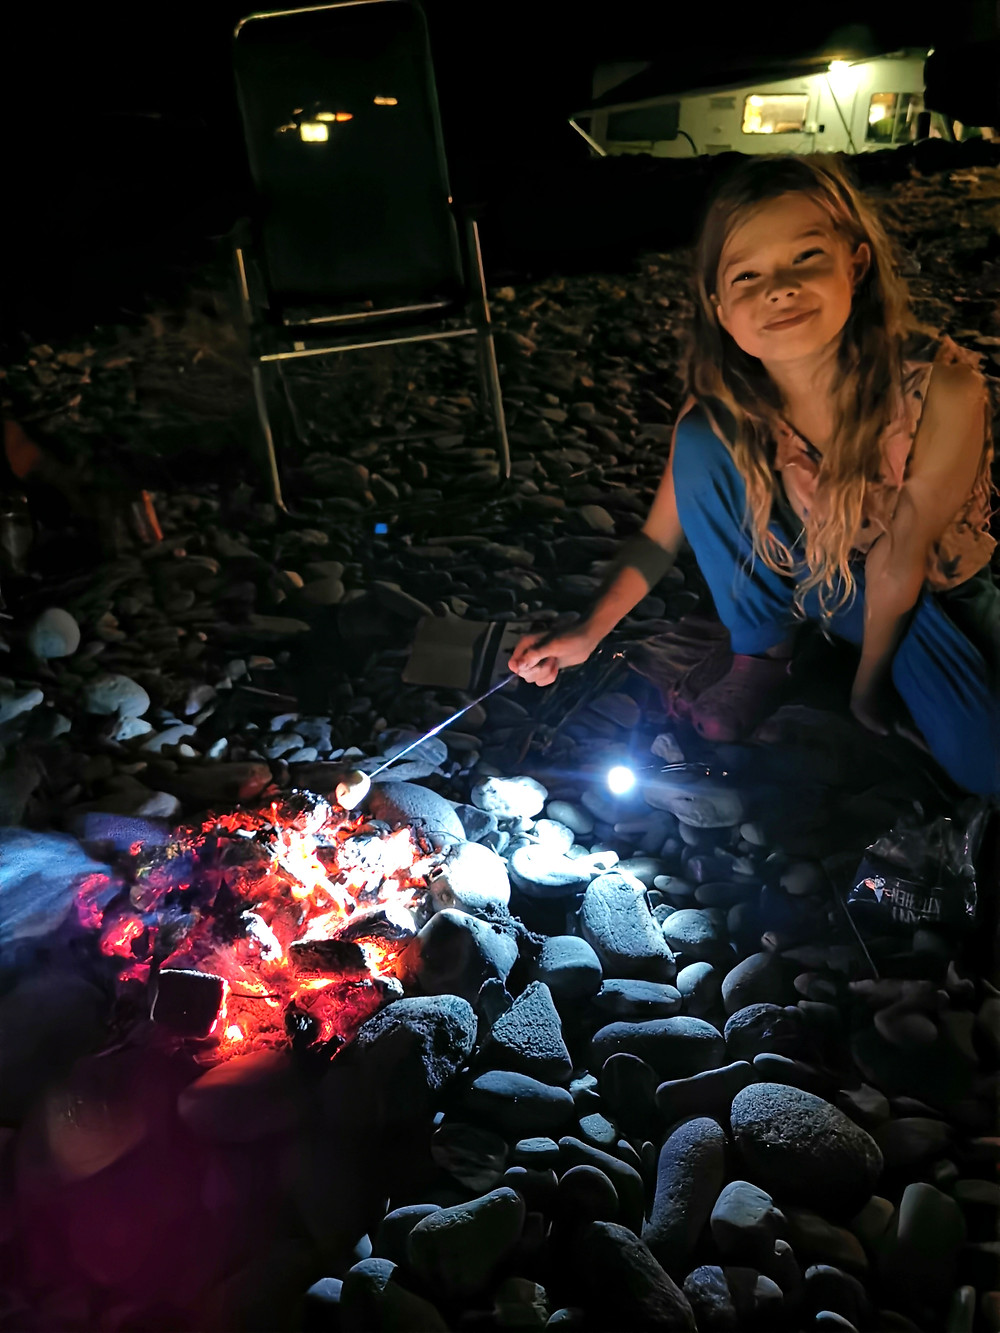 Rosie is sitting on a stone beach in the dark. There is a pile of glowing embers from a fire in front of her, and she is holding a marshmallow on a stick.